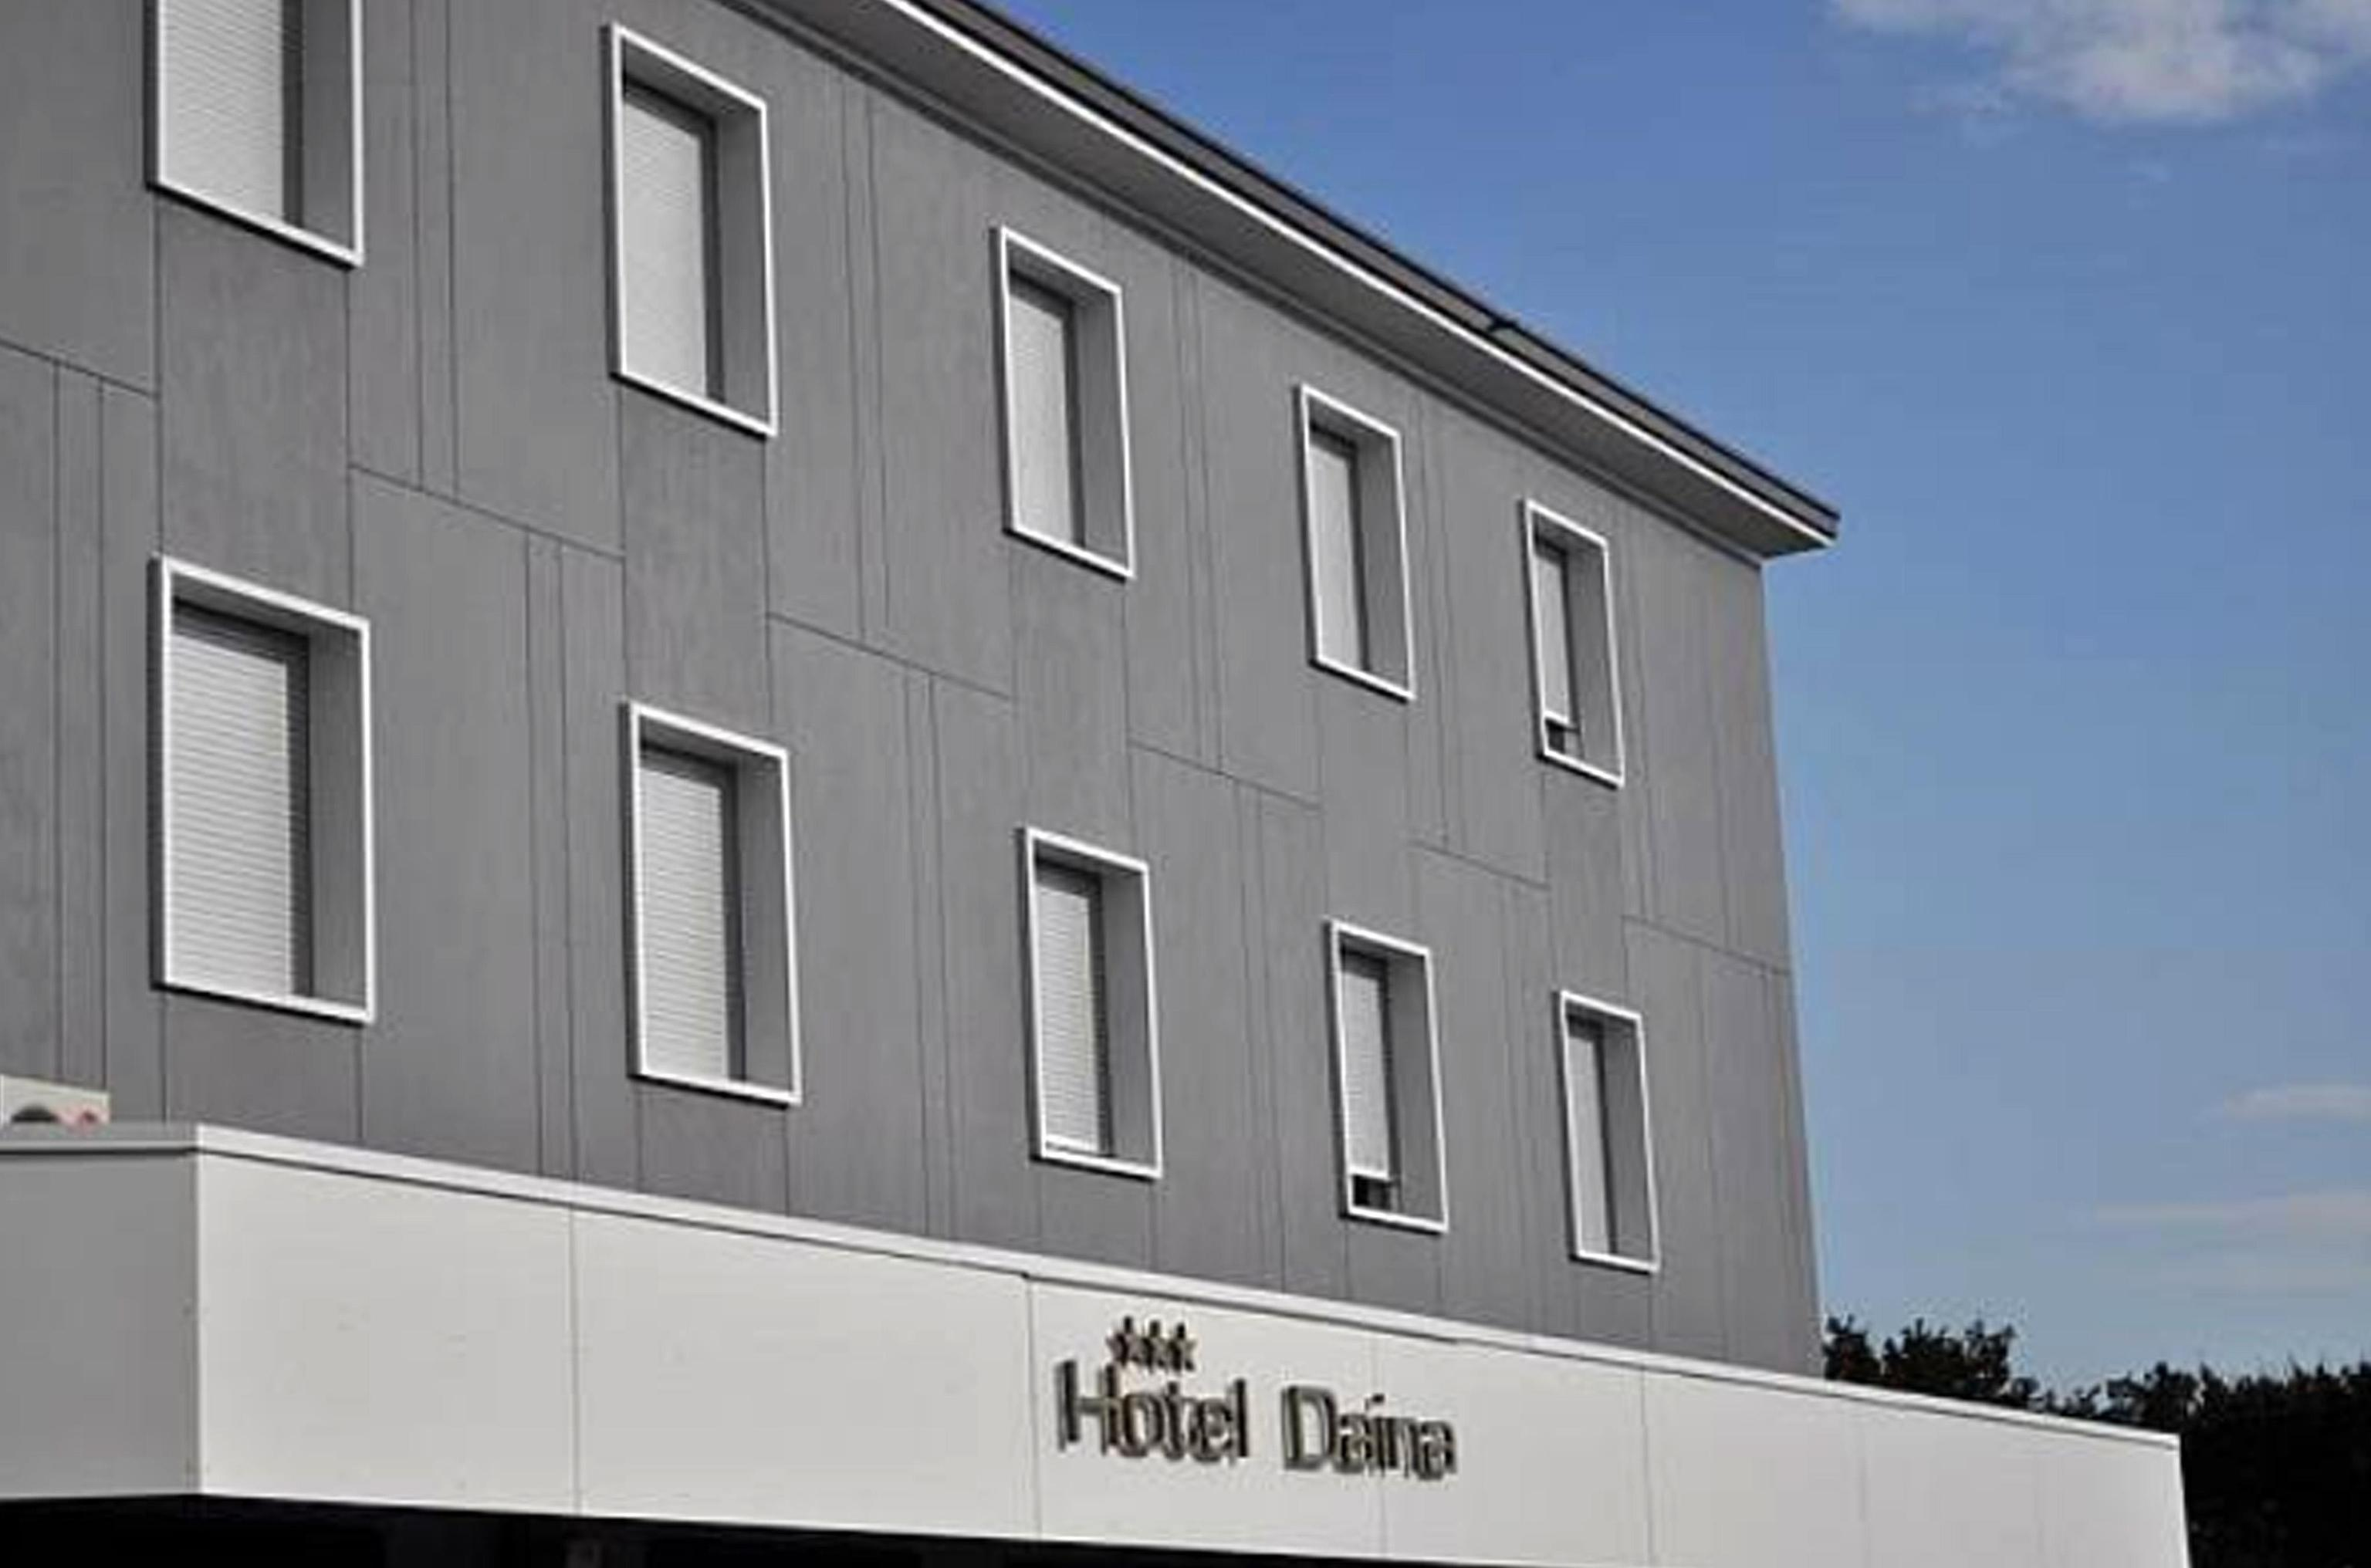 Uccisa in hotel: killer si costituisce